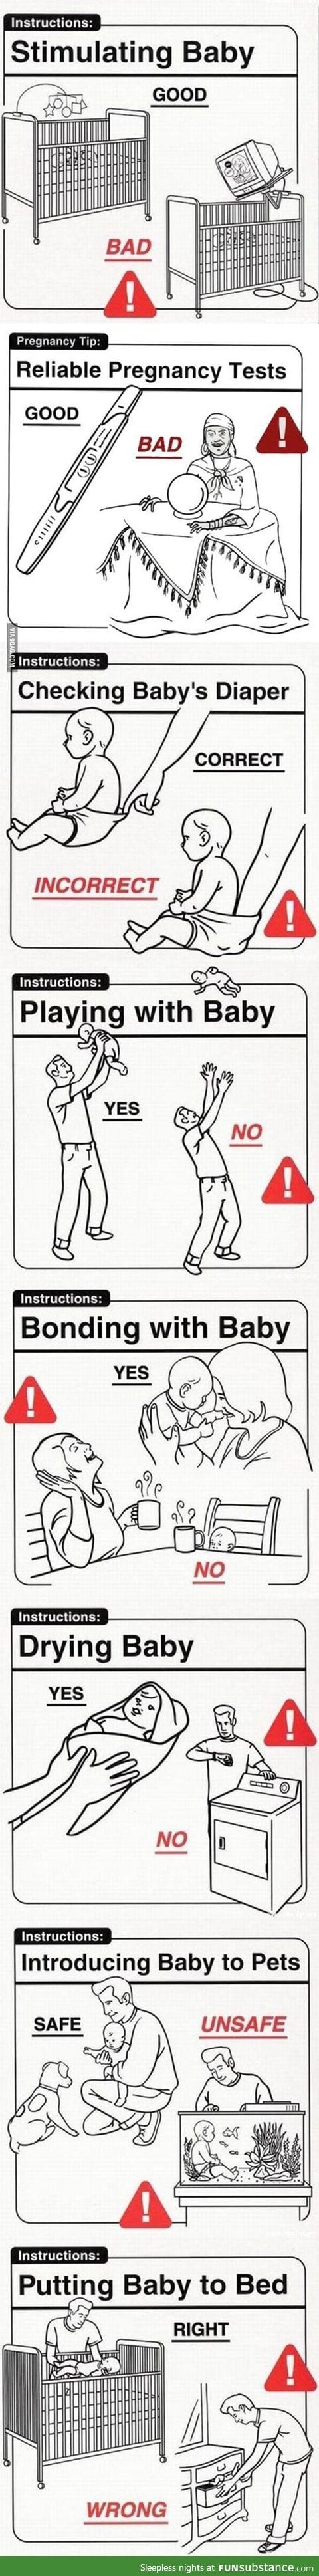 Parenting tips for all you current/future parents out there...